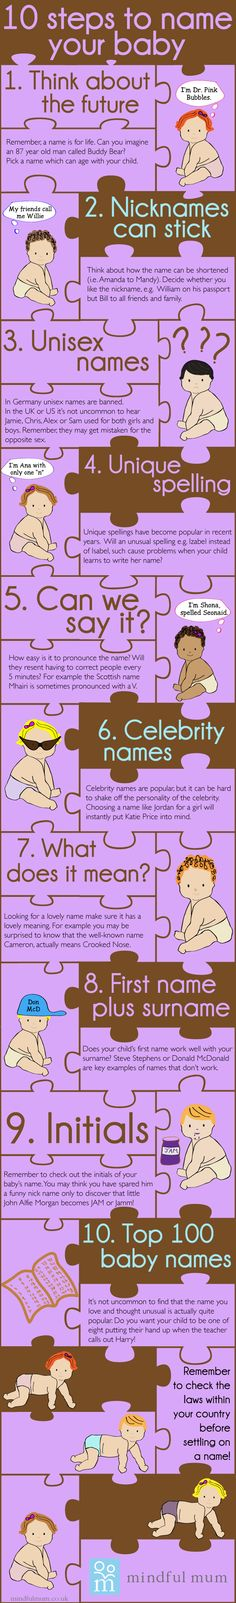 Baby names - How to choose a name for your baby.  Helpful hints here.